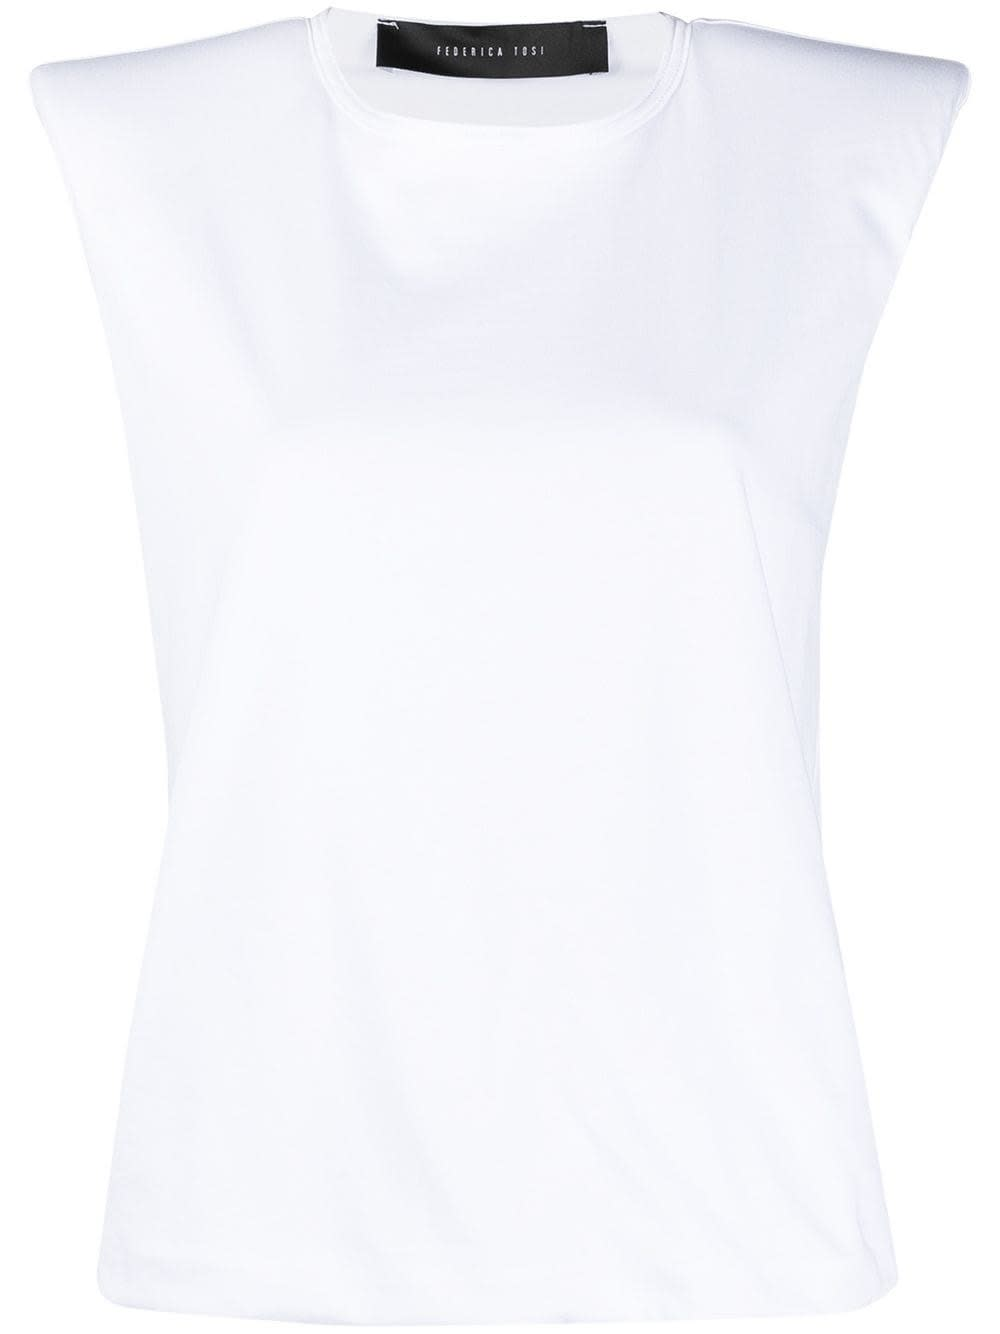 Federica Tosi COTTON T-SHIRT WITH PADDED SHOULDERS